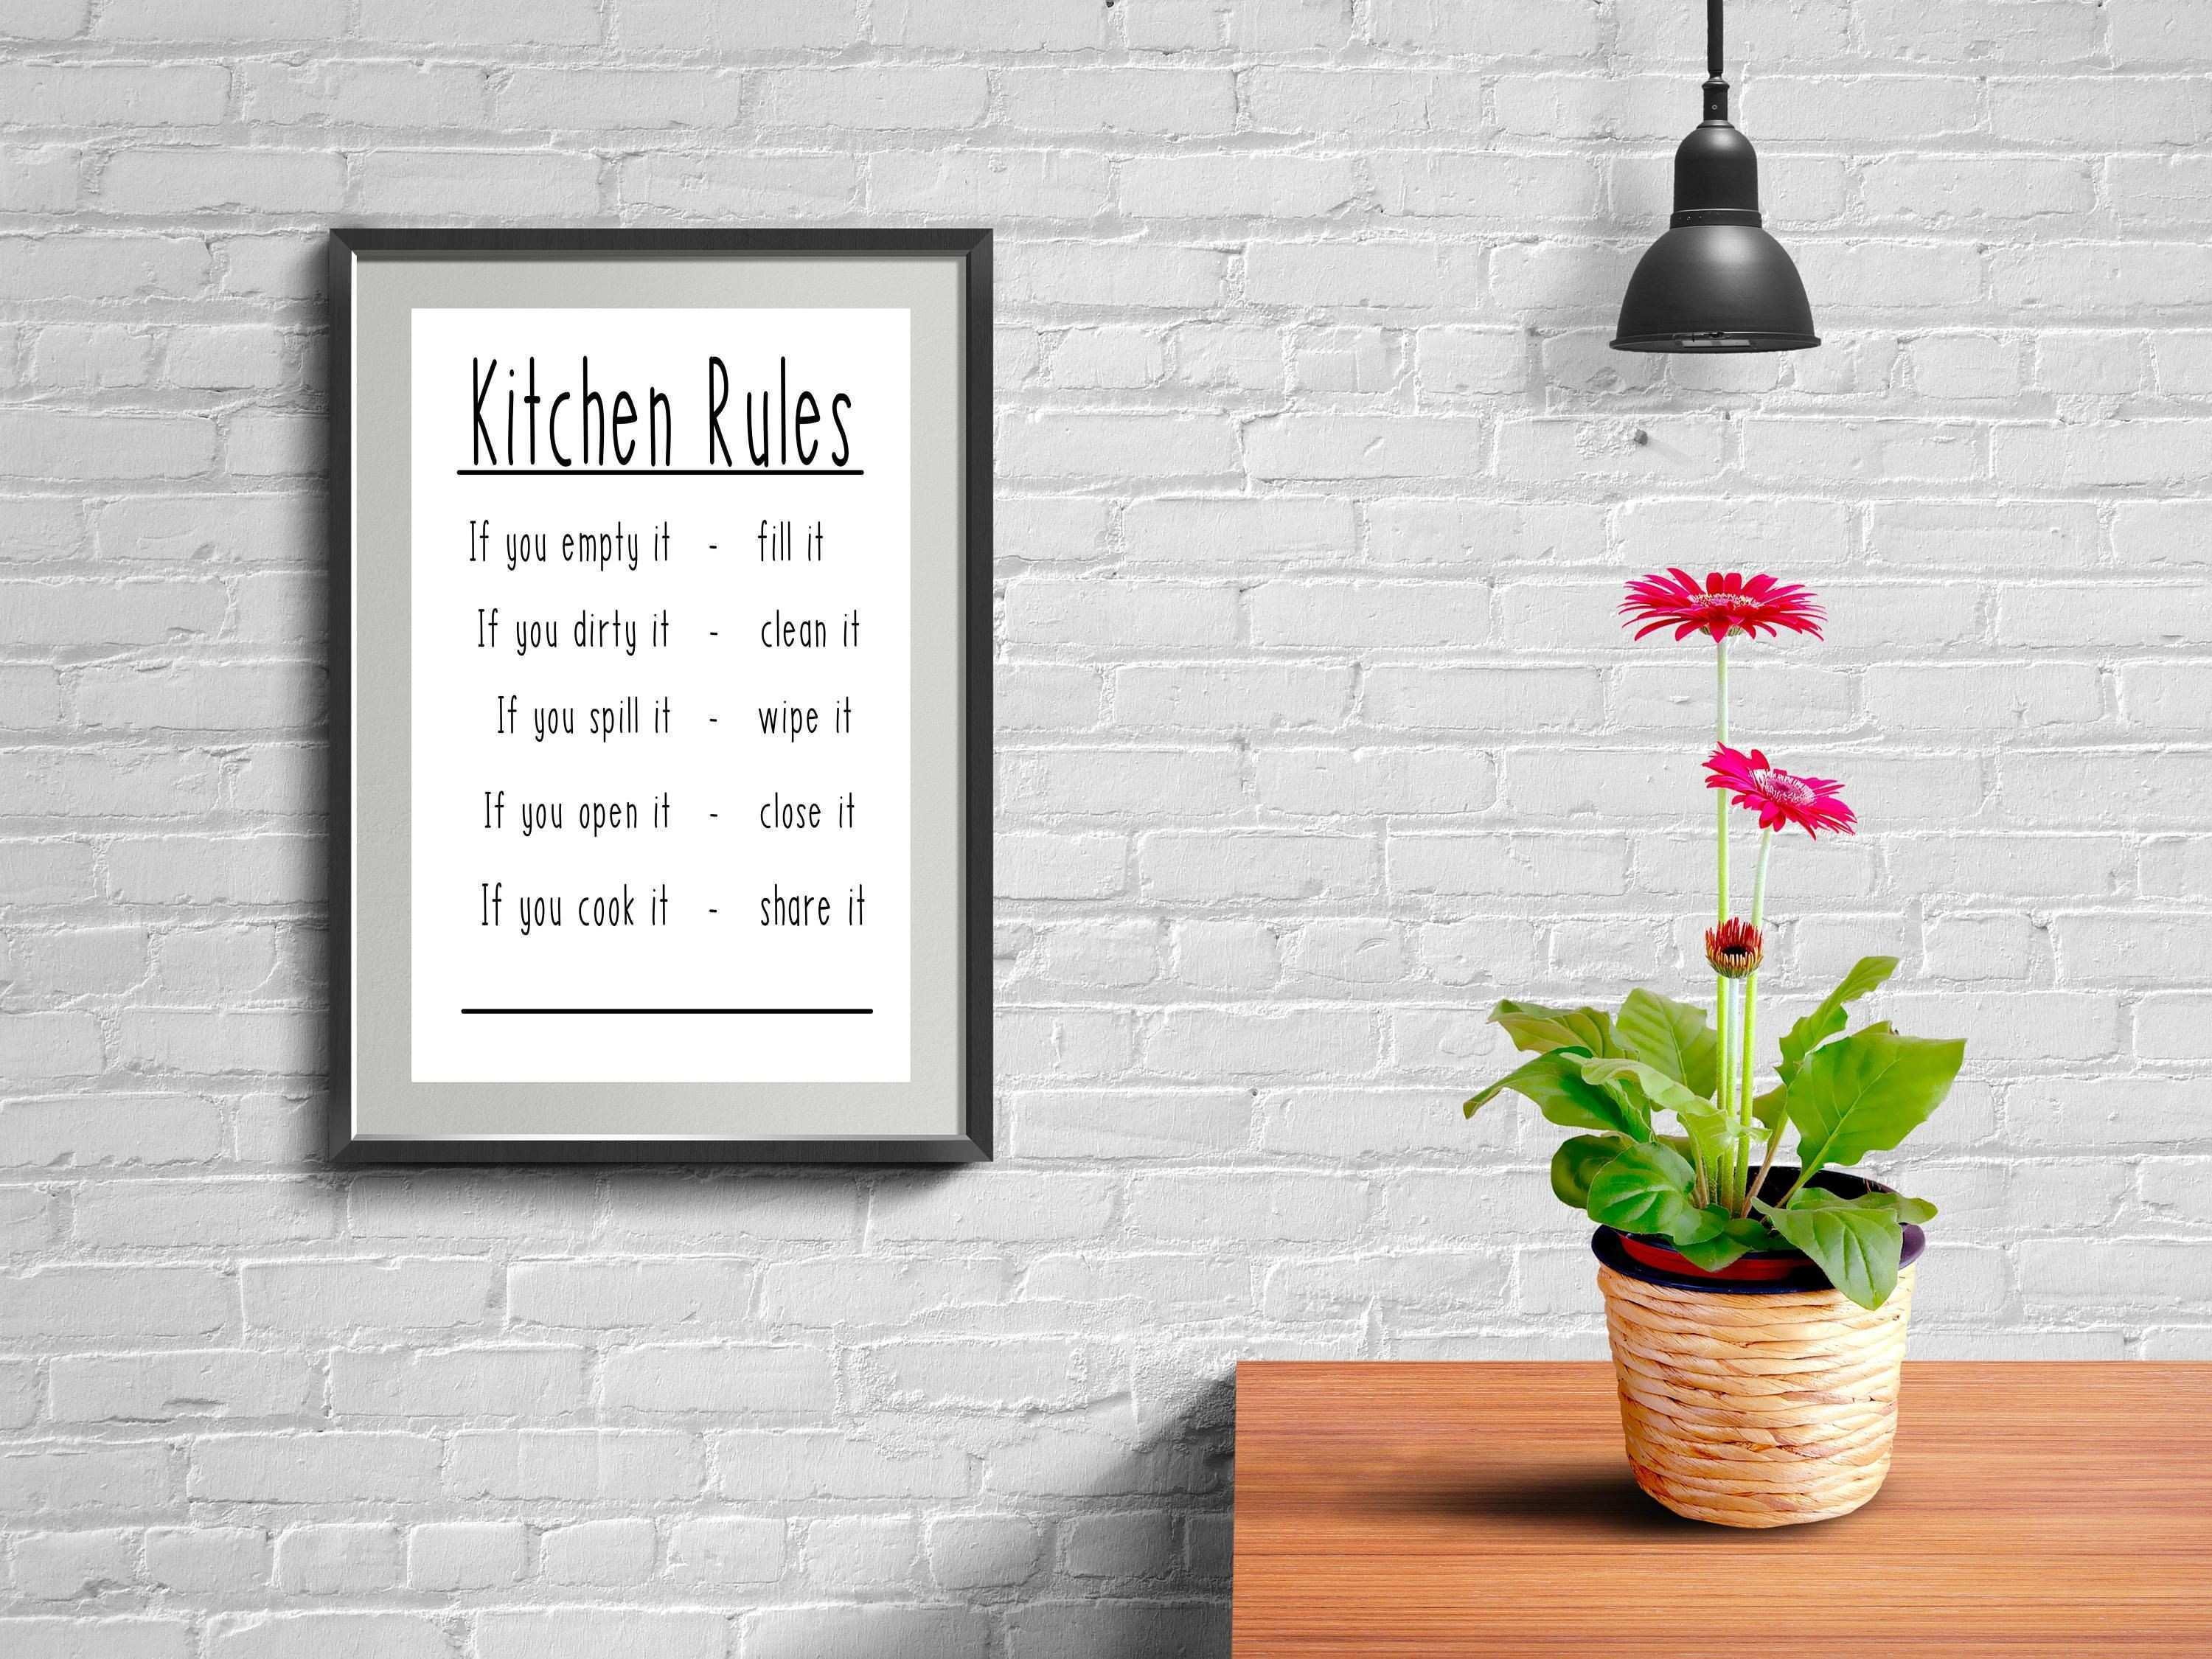 Kitchen Rules Printable Home Decor Wall Hanging Kitchen Decor